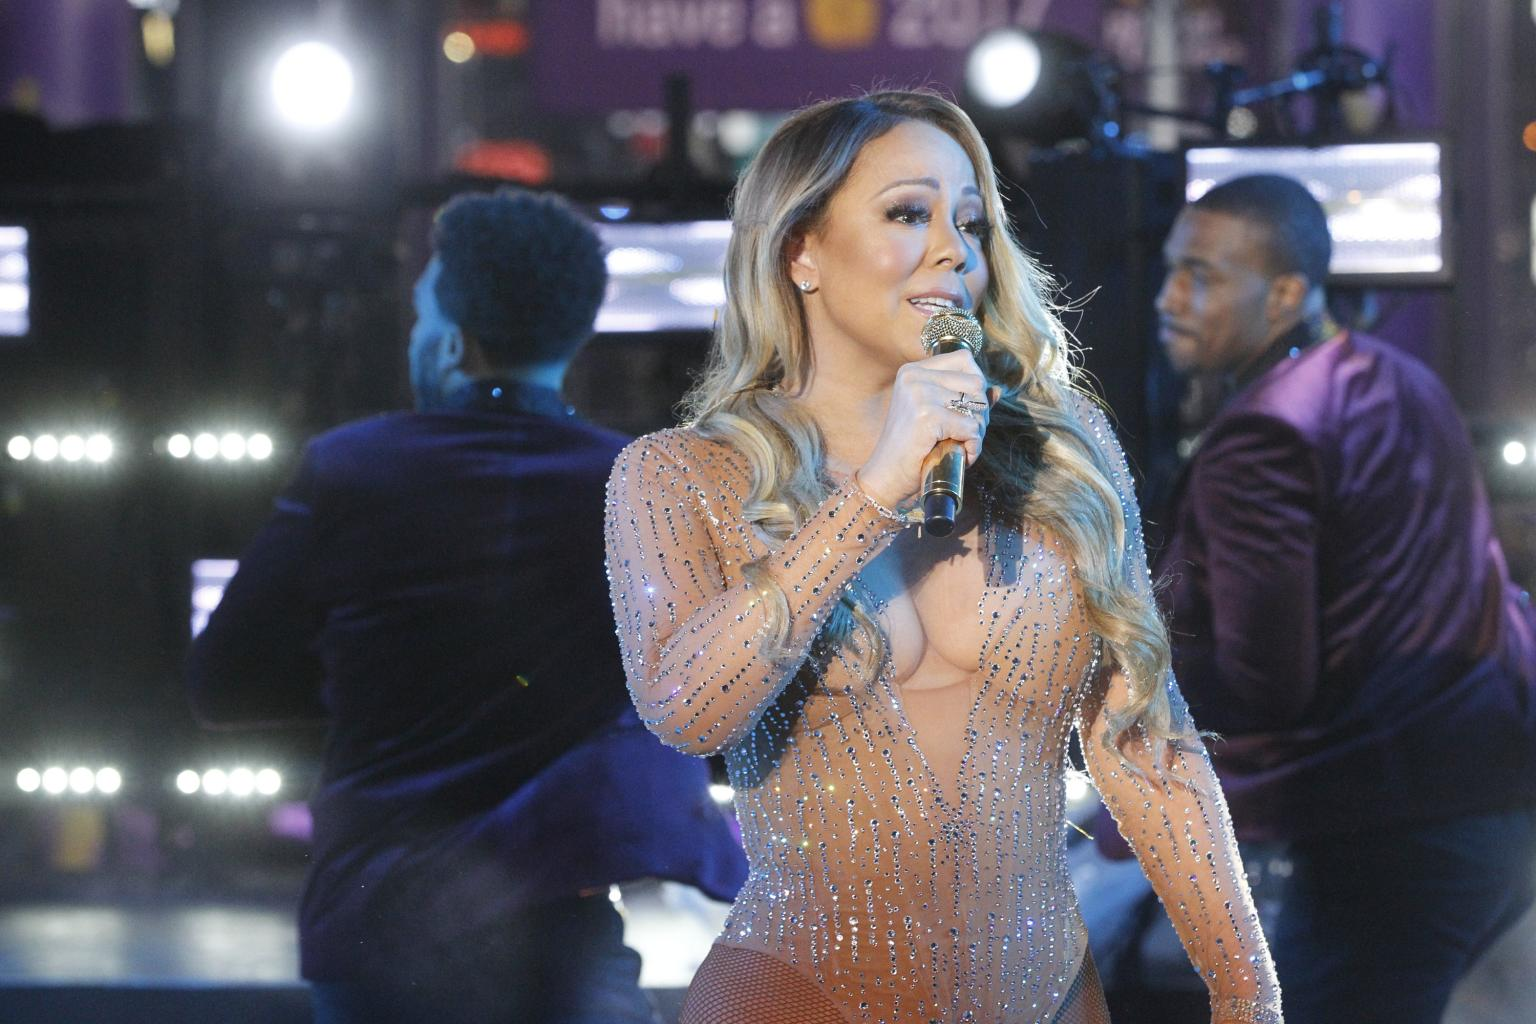 Mariah Carey Blasts Production Team Who 'Foiled' Her During Nye Fiasco, Taking Break From Social Media